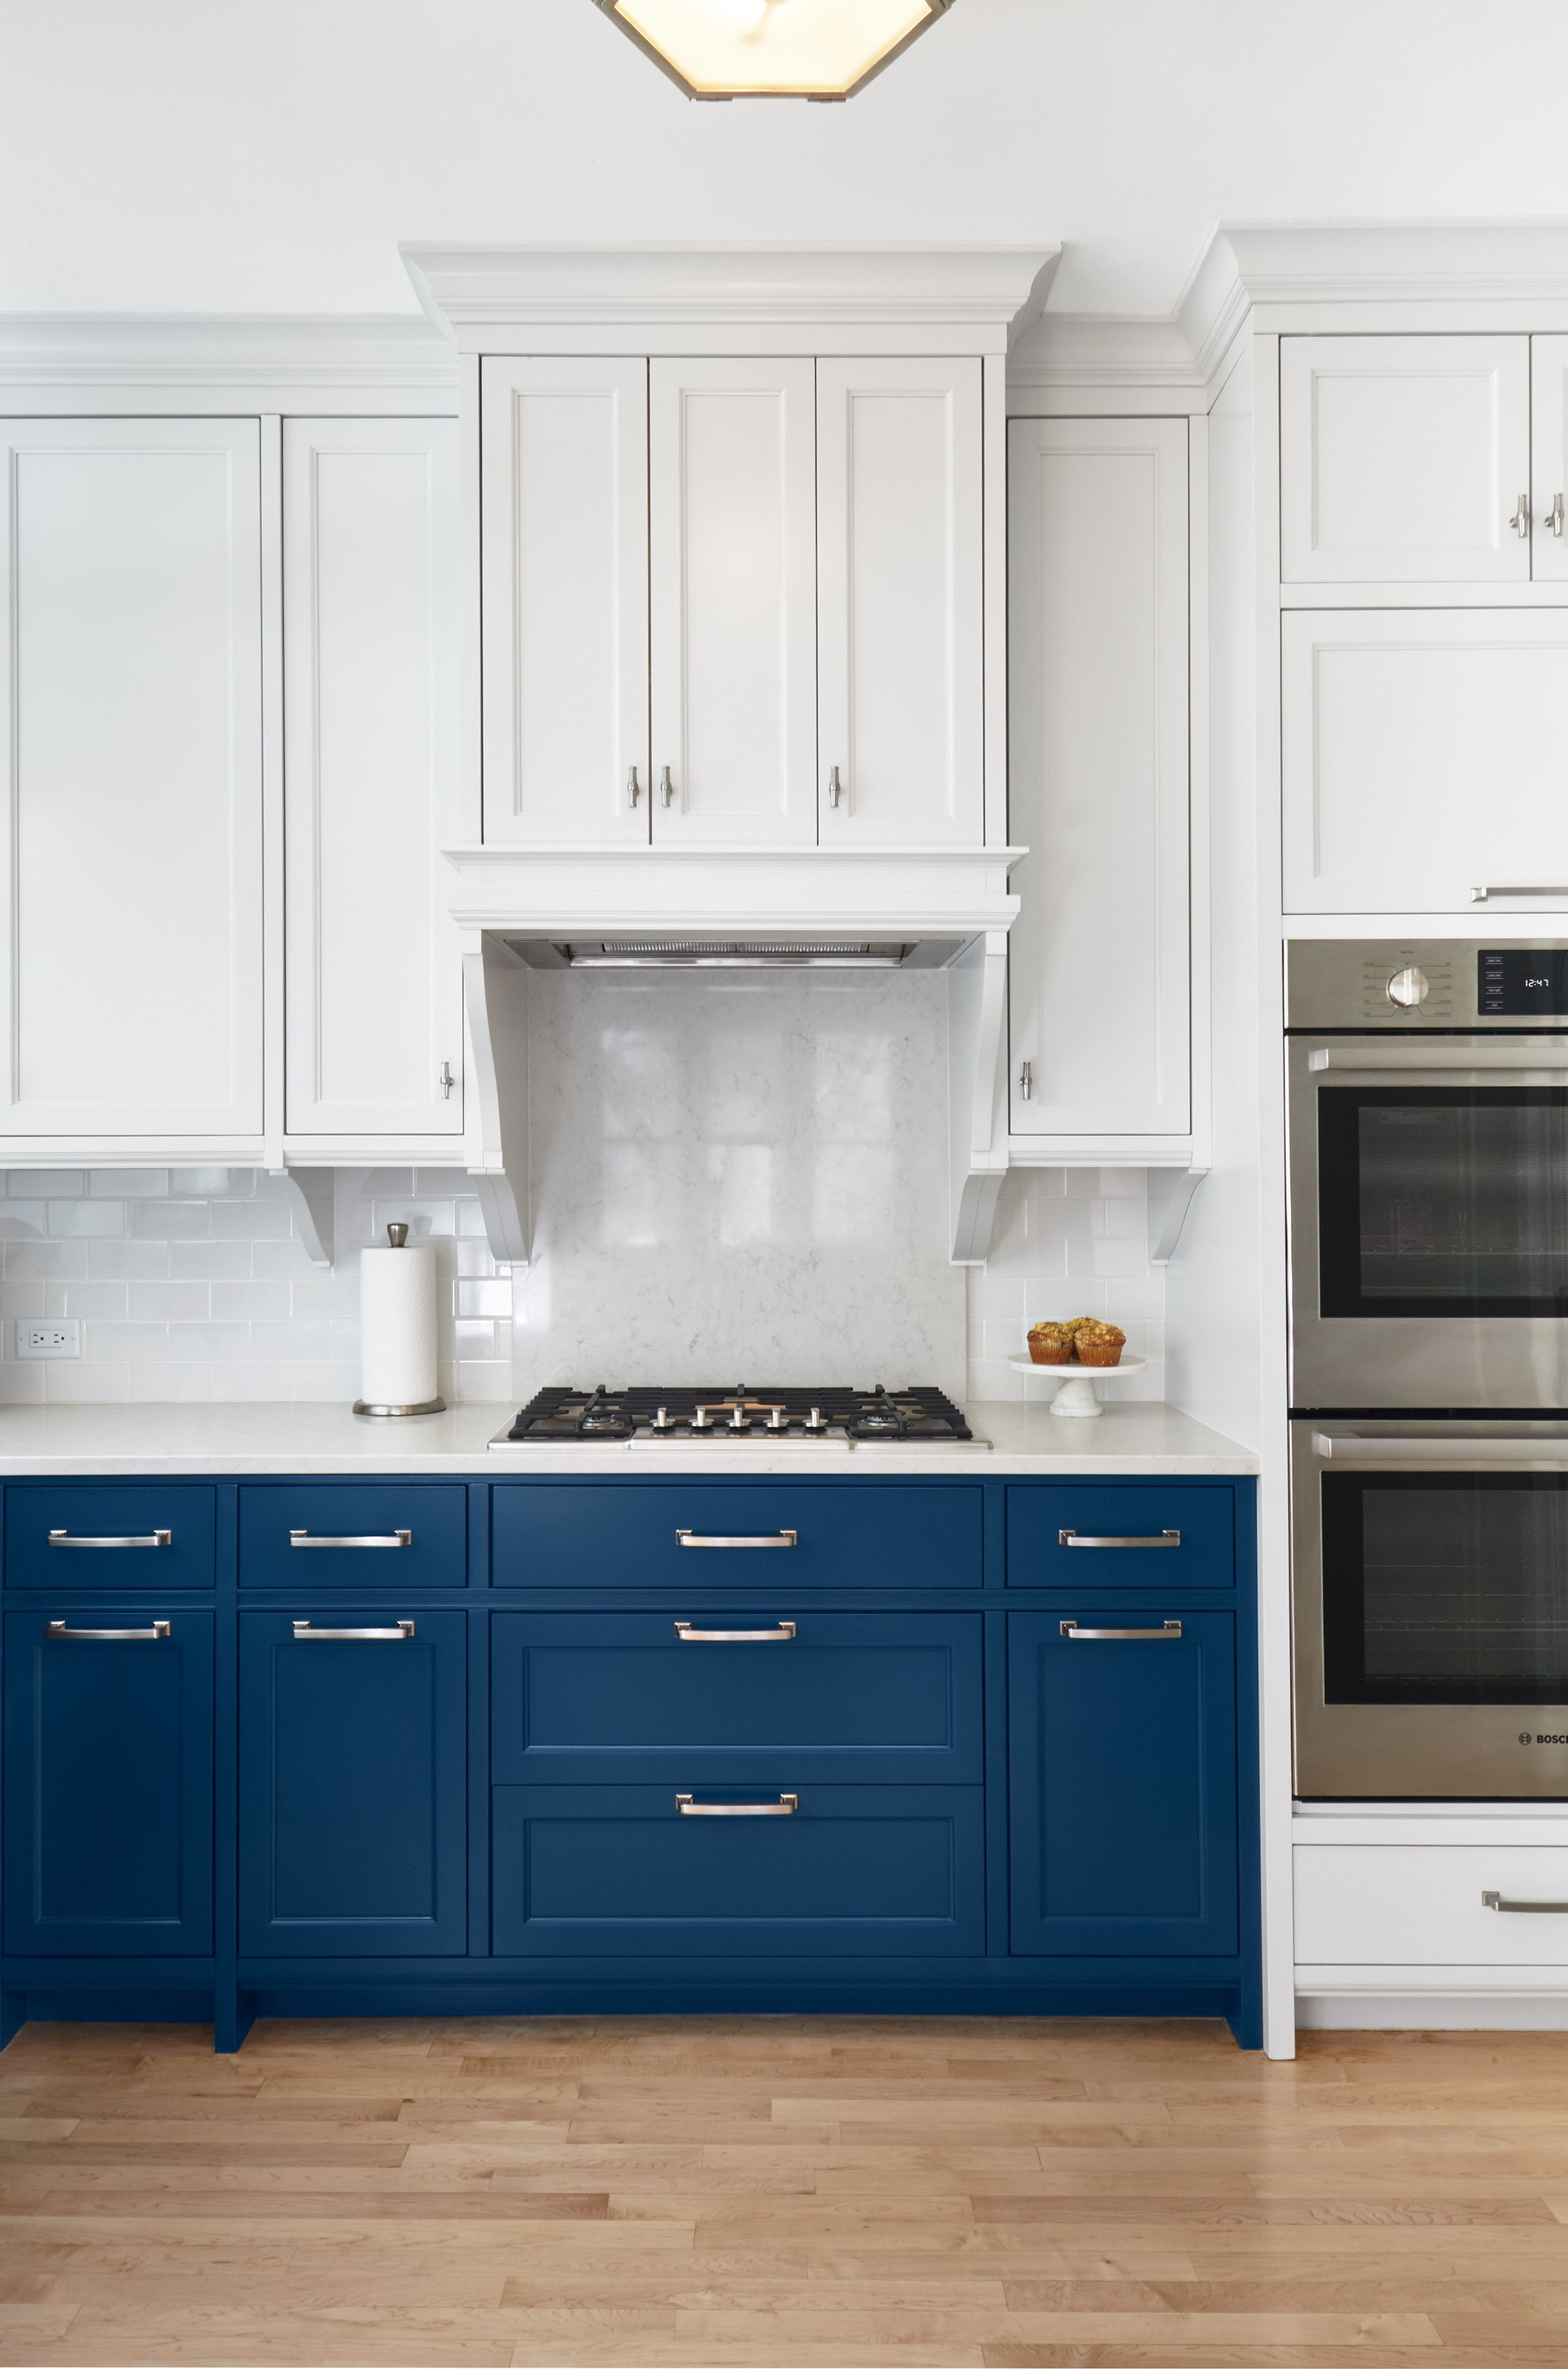 40 Blue Kitchen Ideas Lovely Ways To Use Blue Cabinets And Decor In Kitchen Design